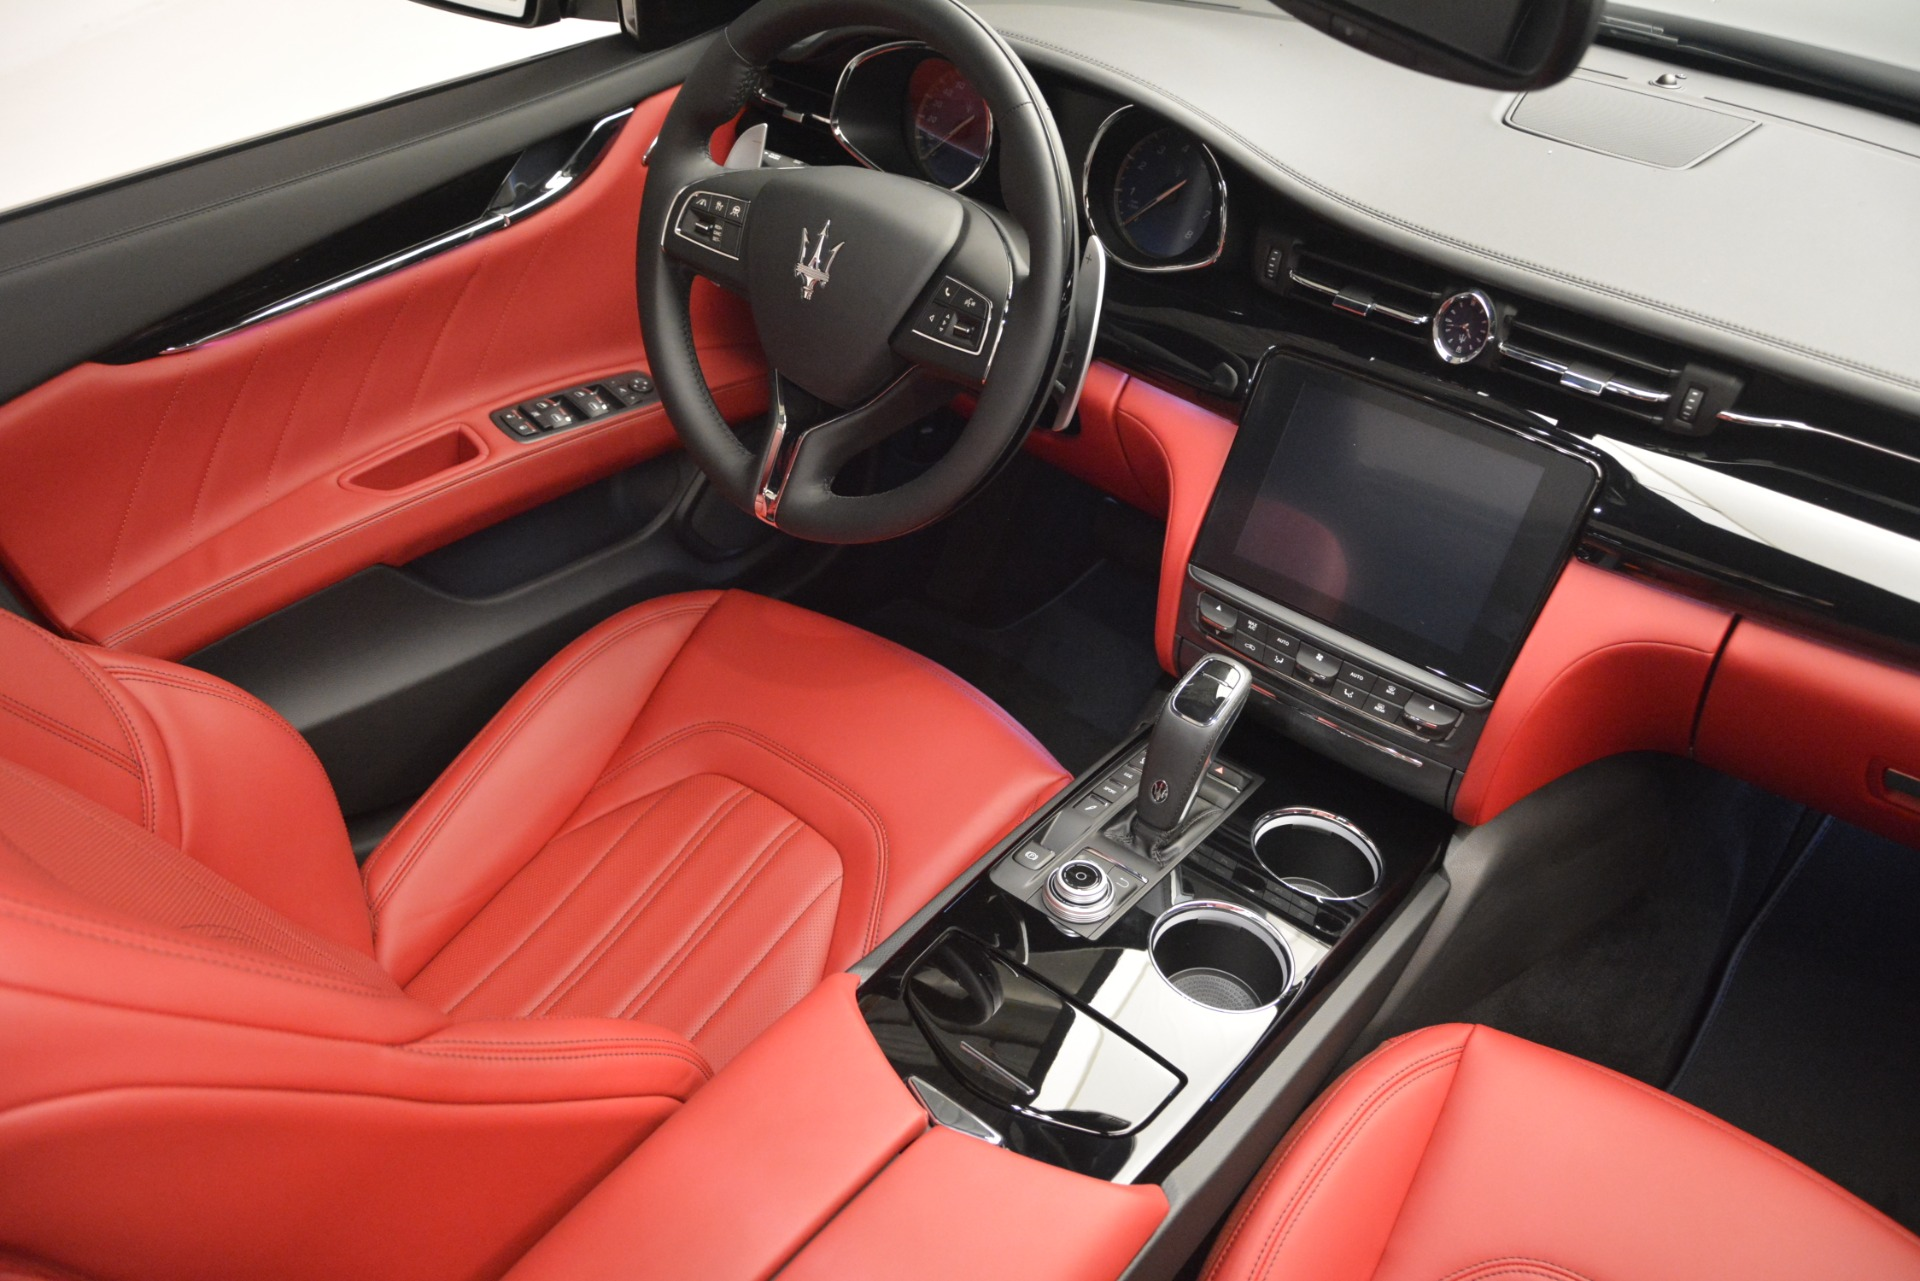 New 2019 Maserati Quattroporte S Q4 GranLusso For Sale In Greenwich, CT 2718_p23